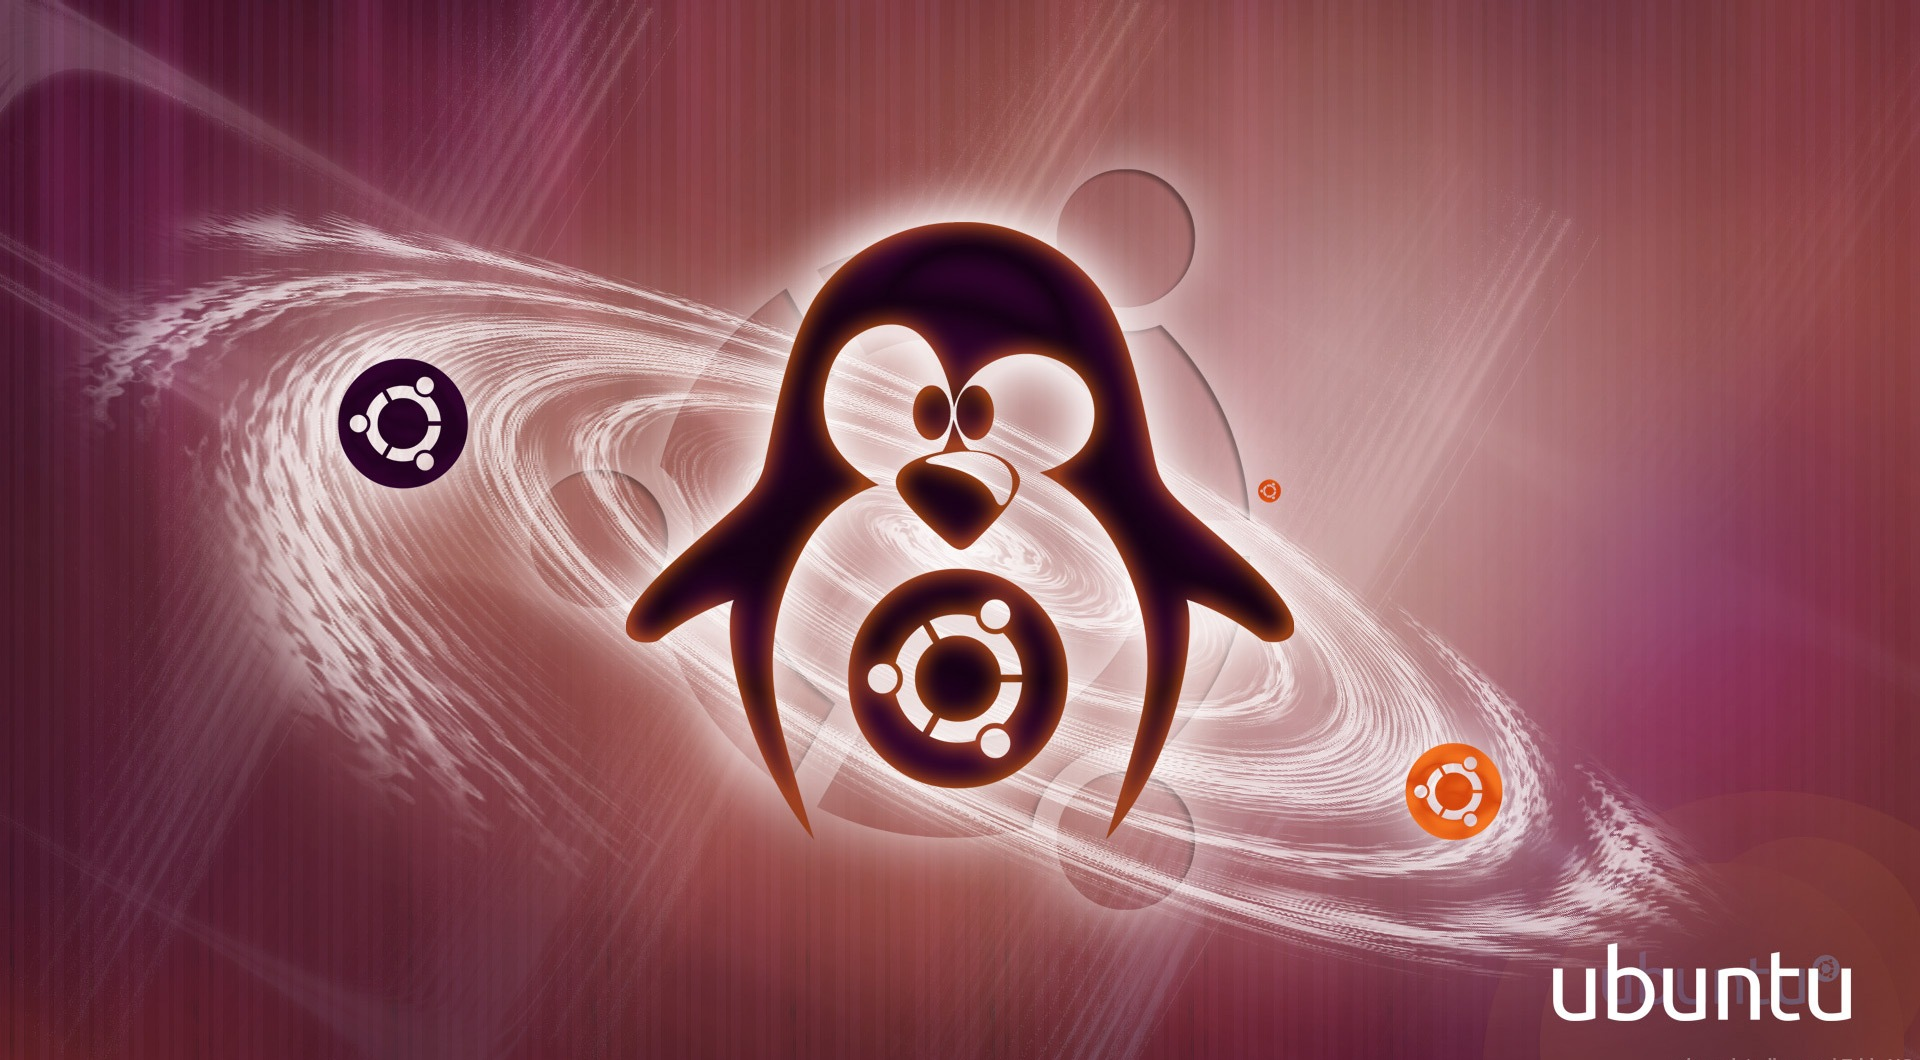 ubuntu wallpaper tablet